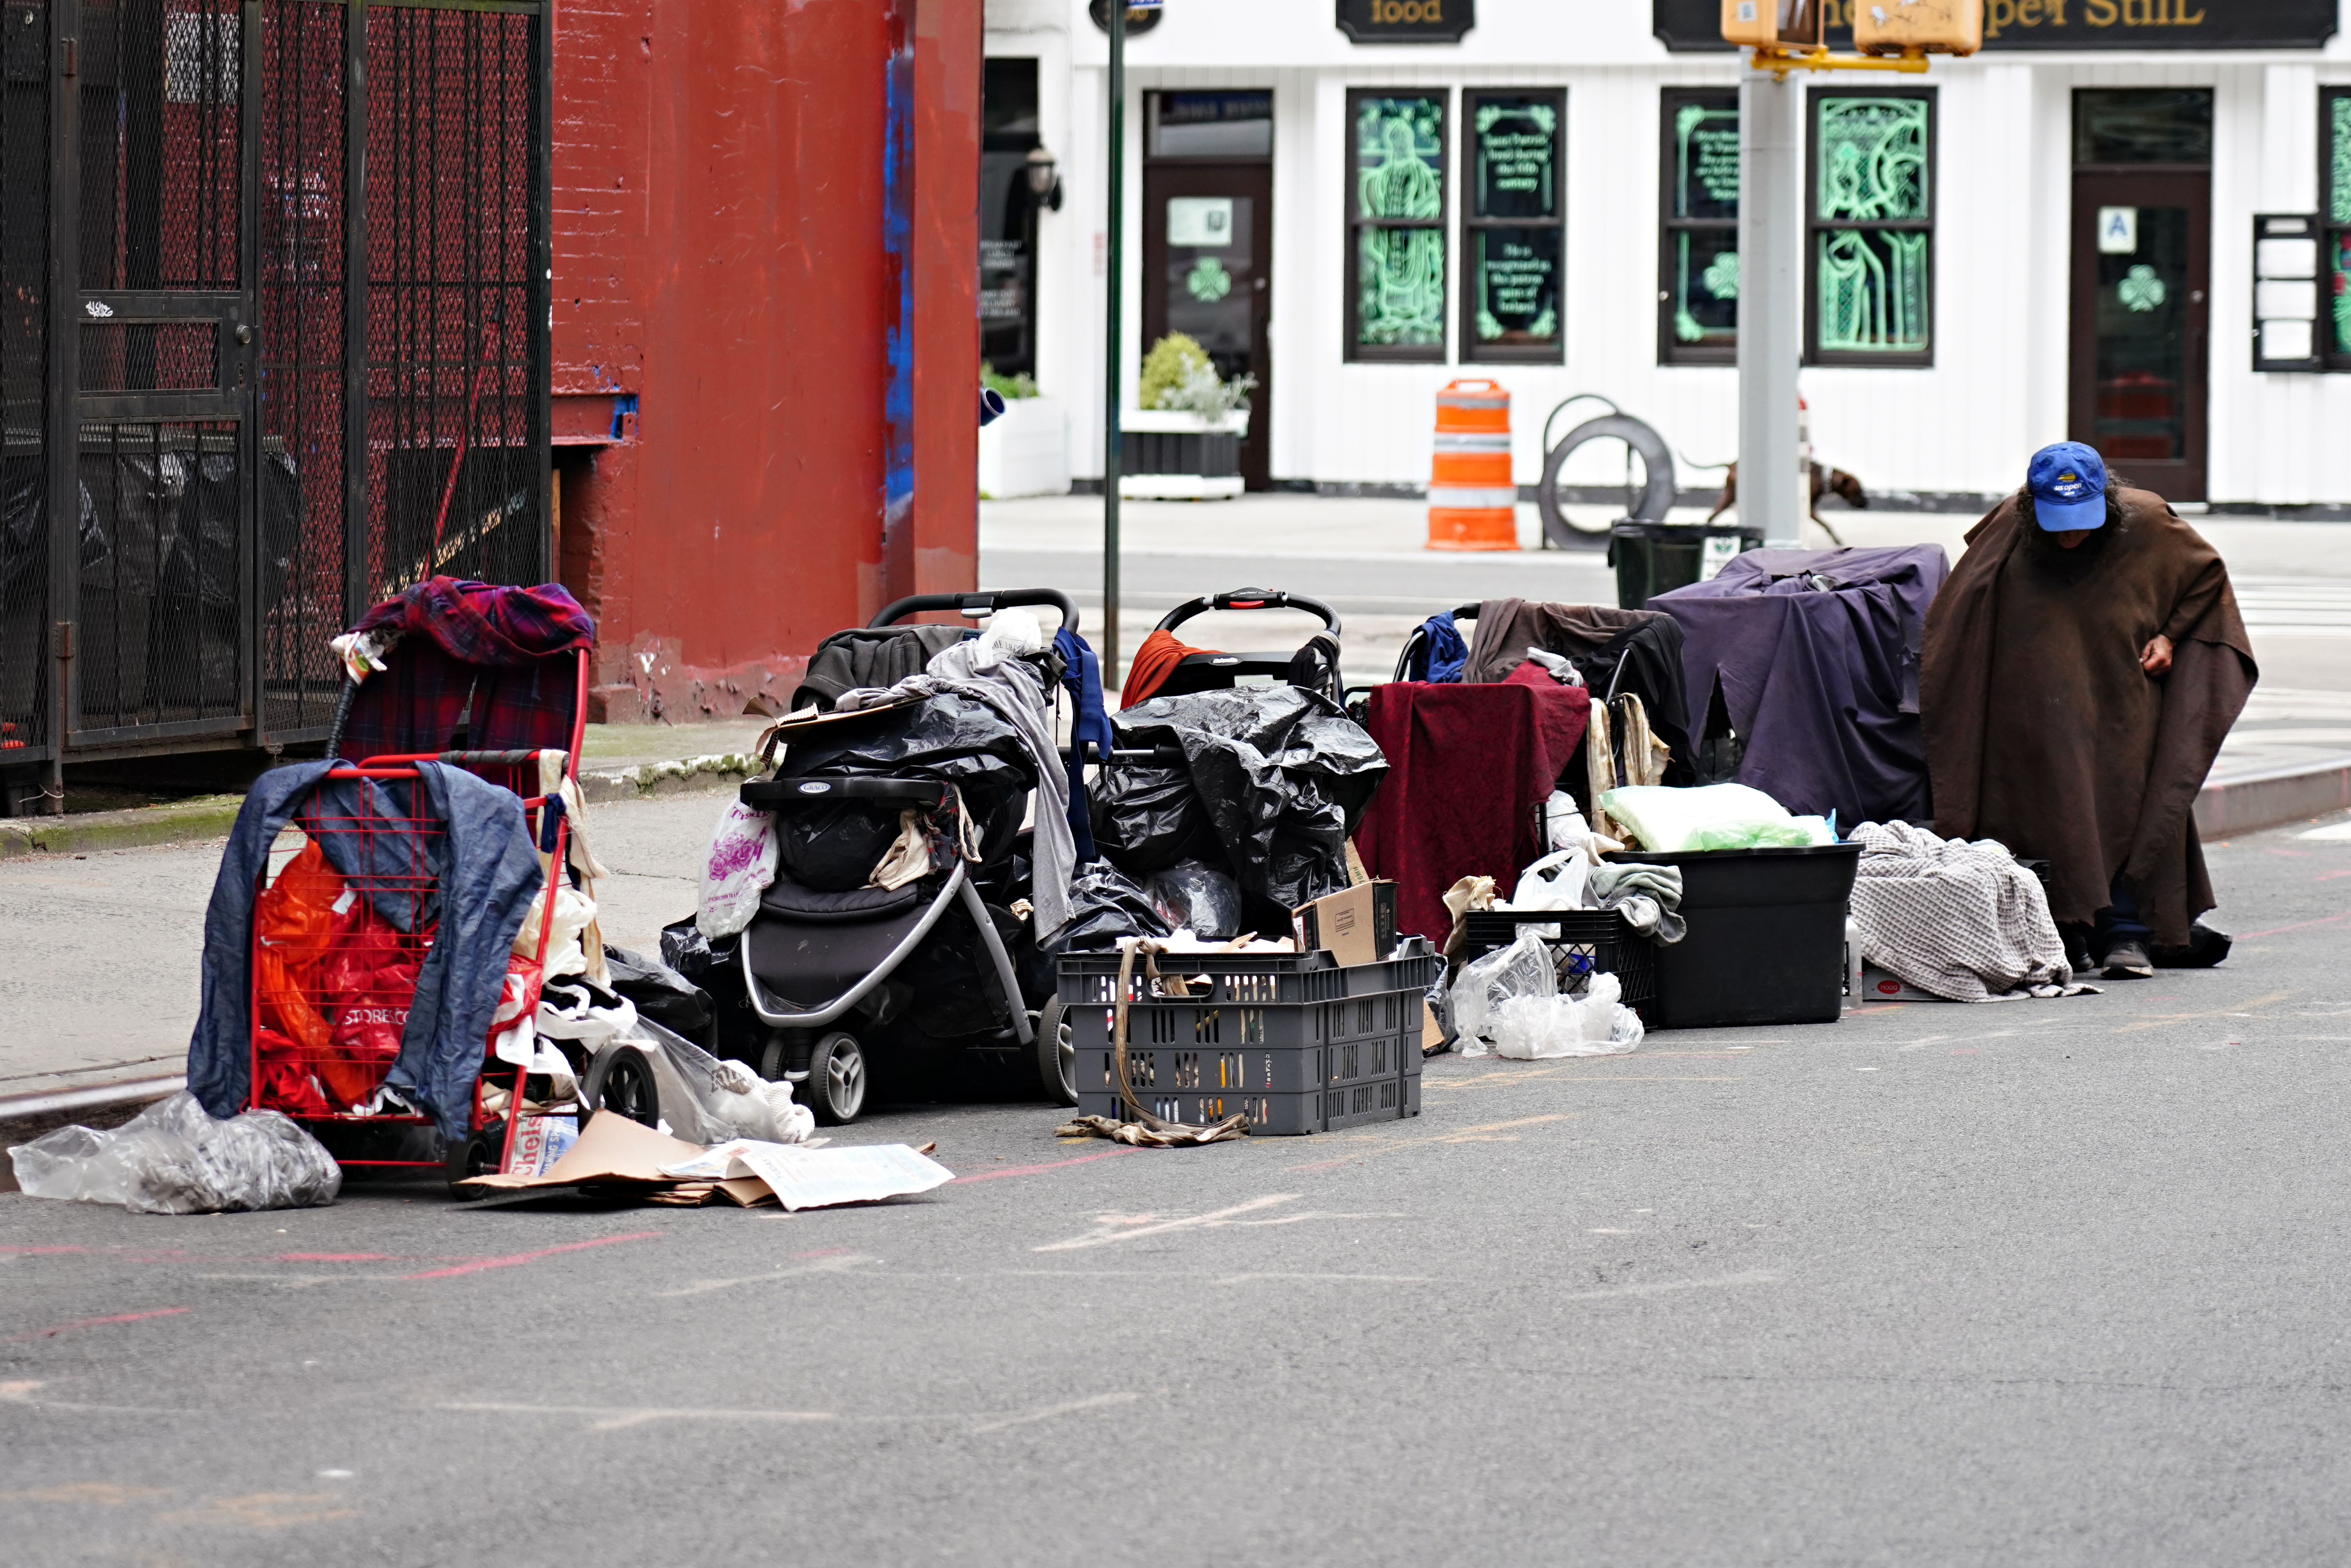 NEW YORK, NEW YORK - MAY 24: A homeless person sits with their belongings on the street during the coronavirus pandemic on May 24, 2020 in New York City. COVID-19 has spread to most countries around the world, claiming over 343,000 lives with over 5.3 million infections reported. (Photo by Cindy Ord/Getty Images)